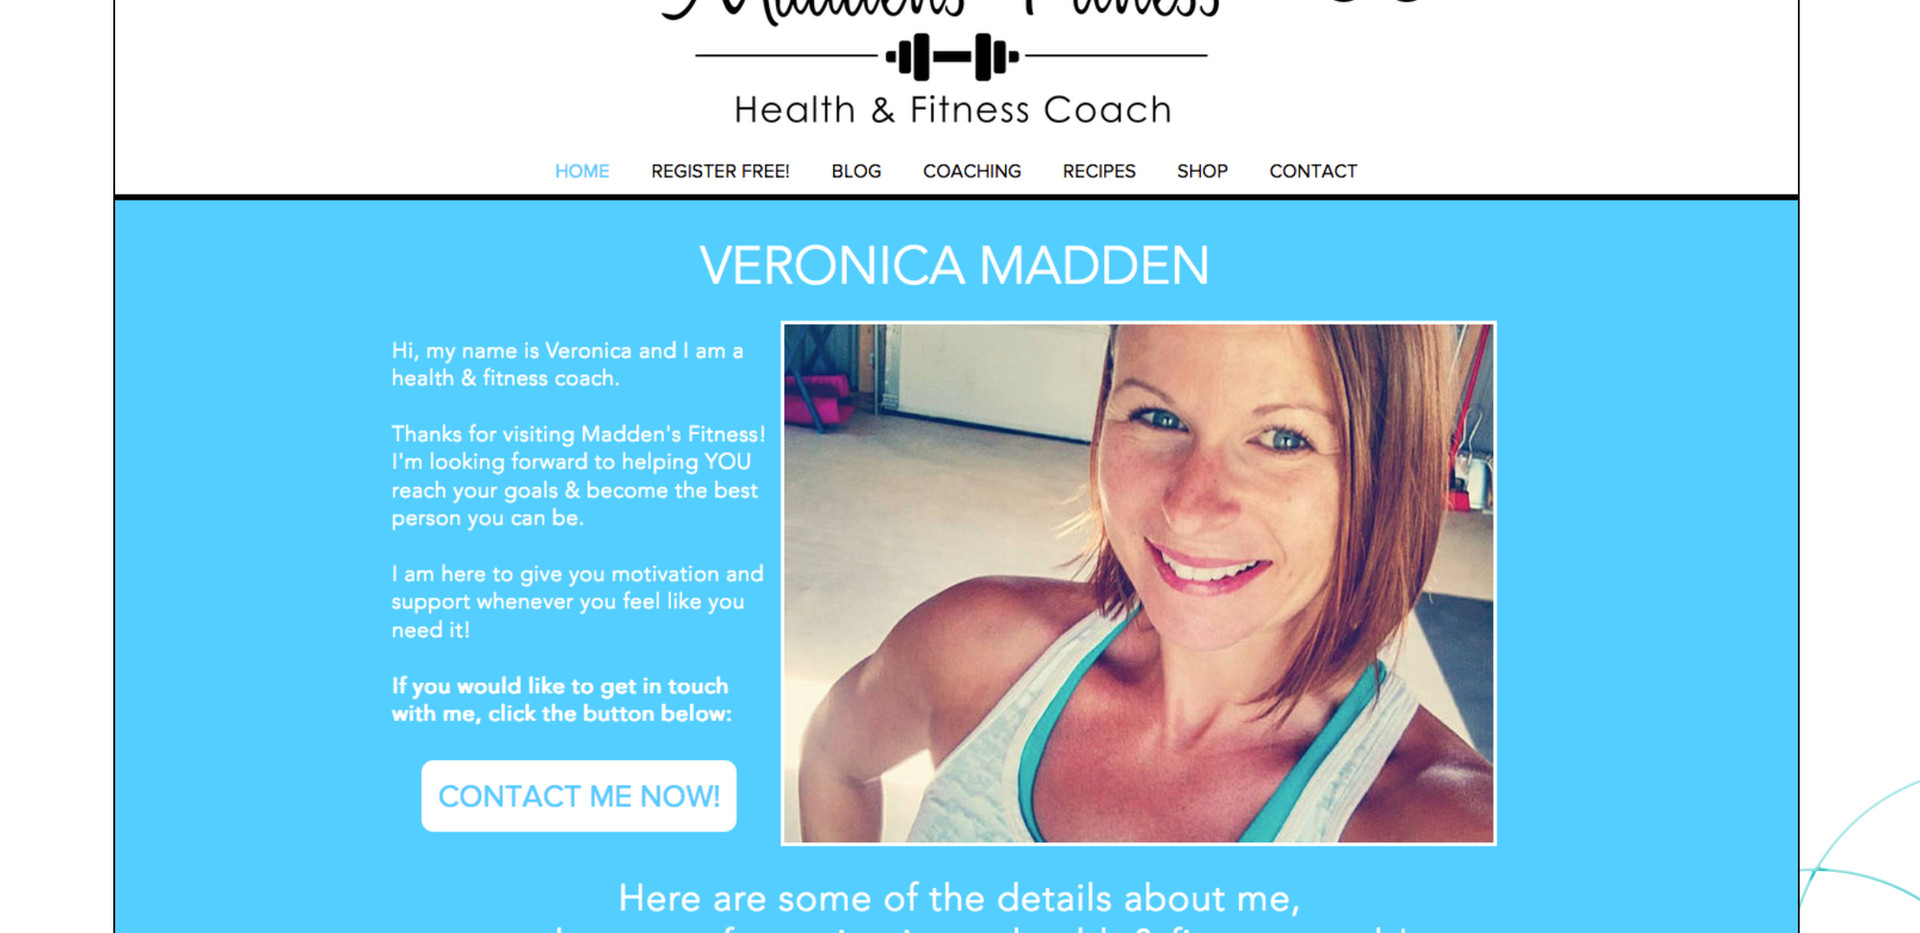 Paul-Micarelli-Maddens Fitness Website.j